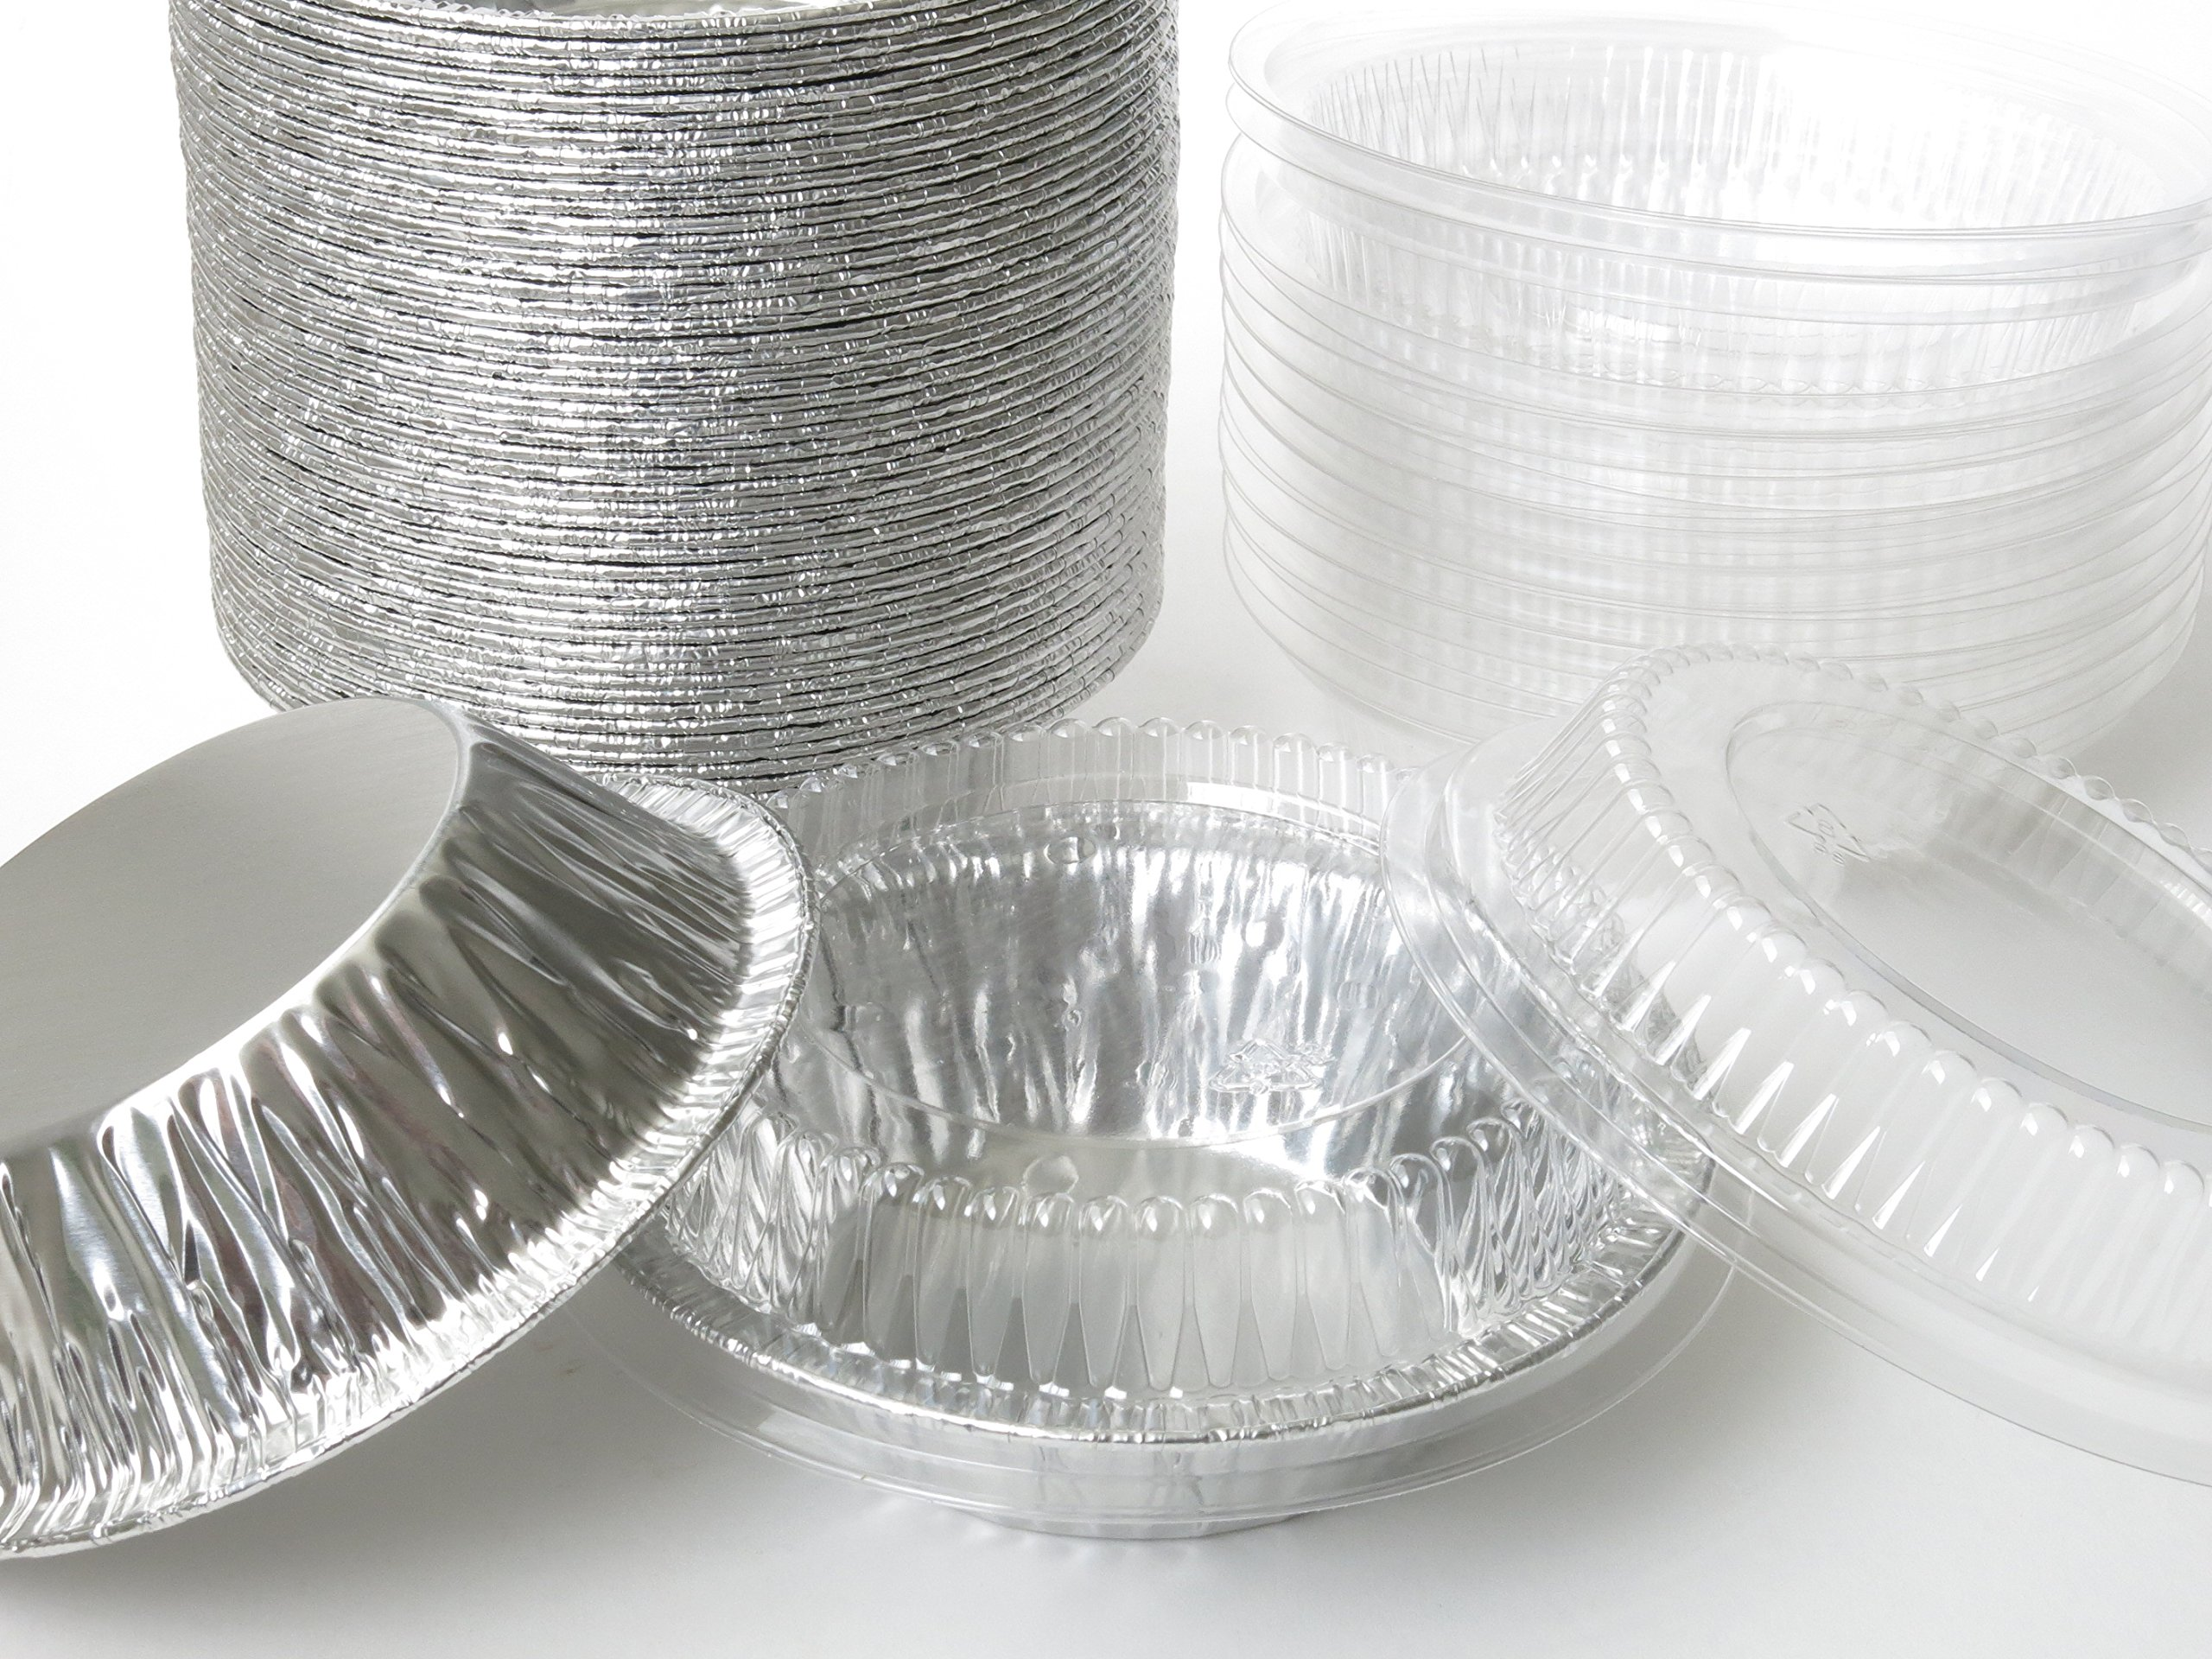 Disposable Aluminum 5'' Tart Pan/individual Pie Pan w/ Clear Dome Lid #501P (1,000) by KitchenDance (Image #2)